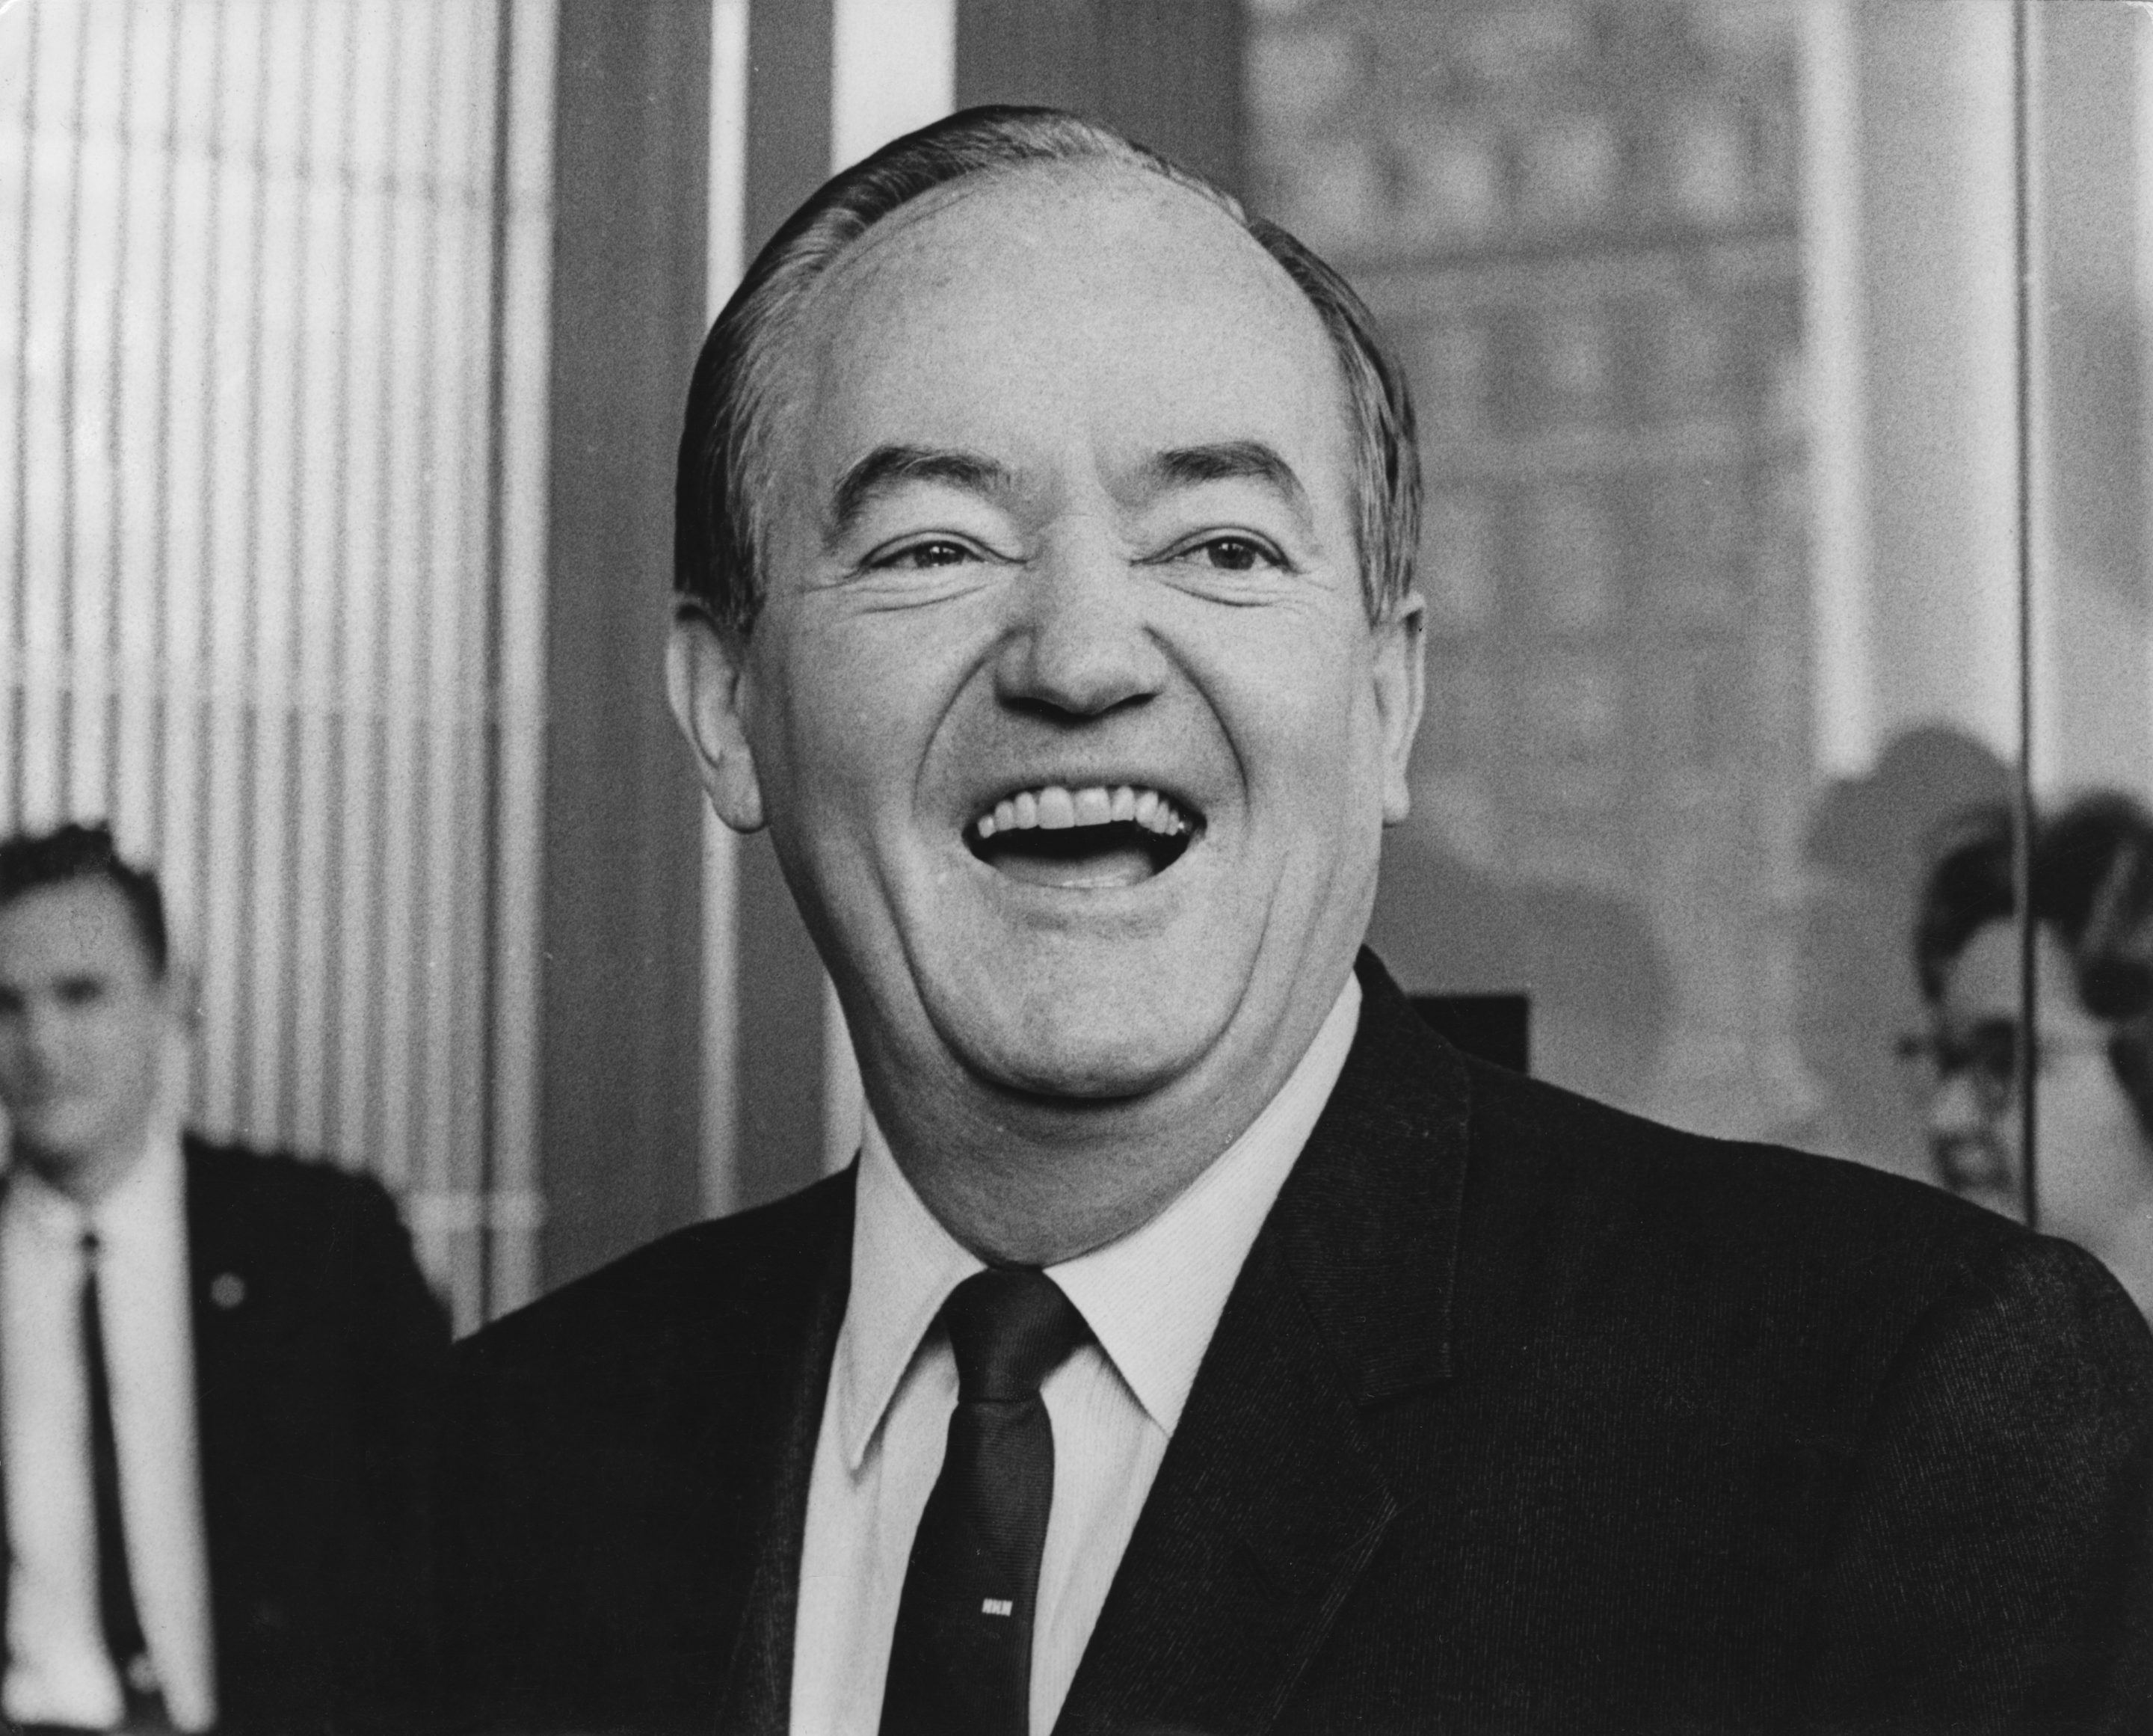 Hubert Humphrey smiling